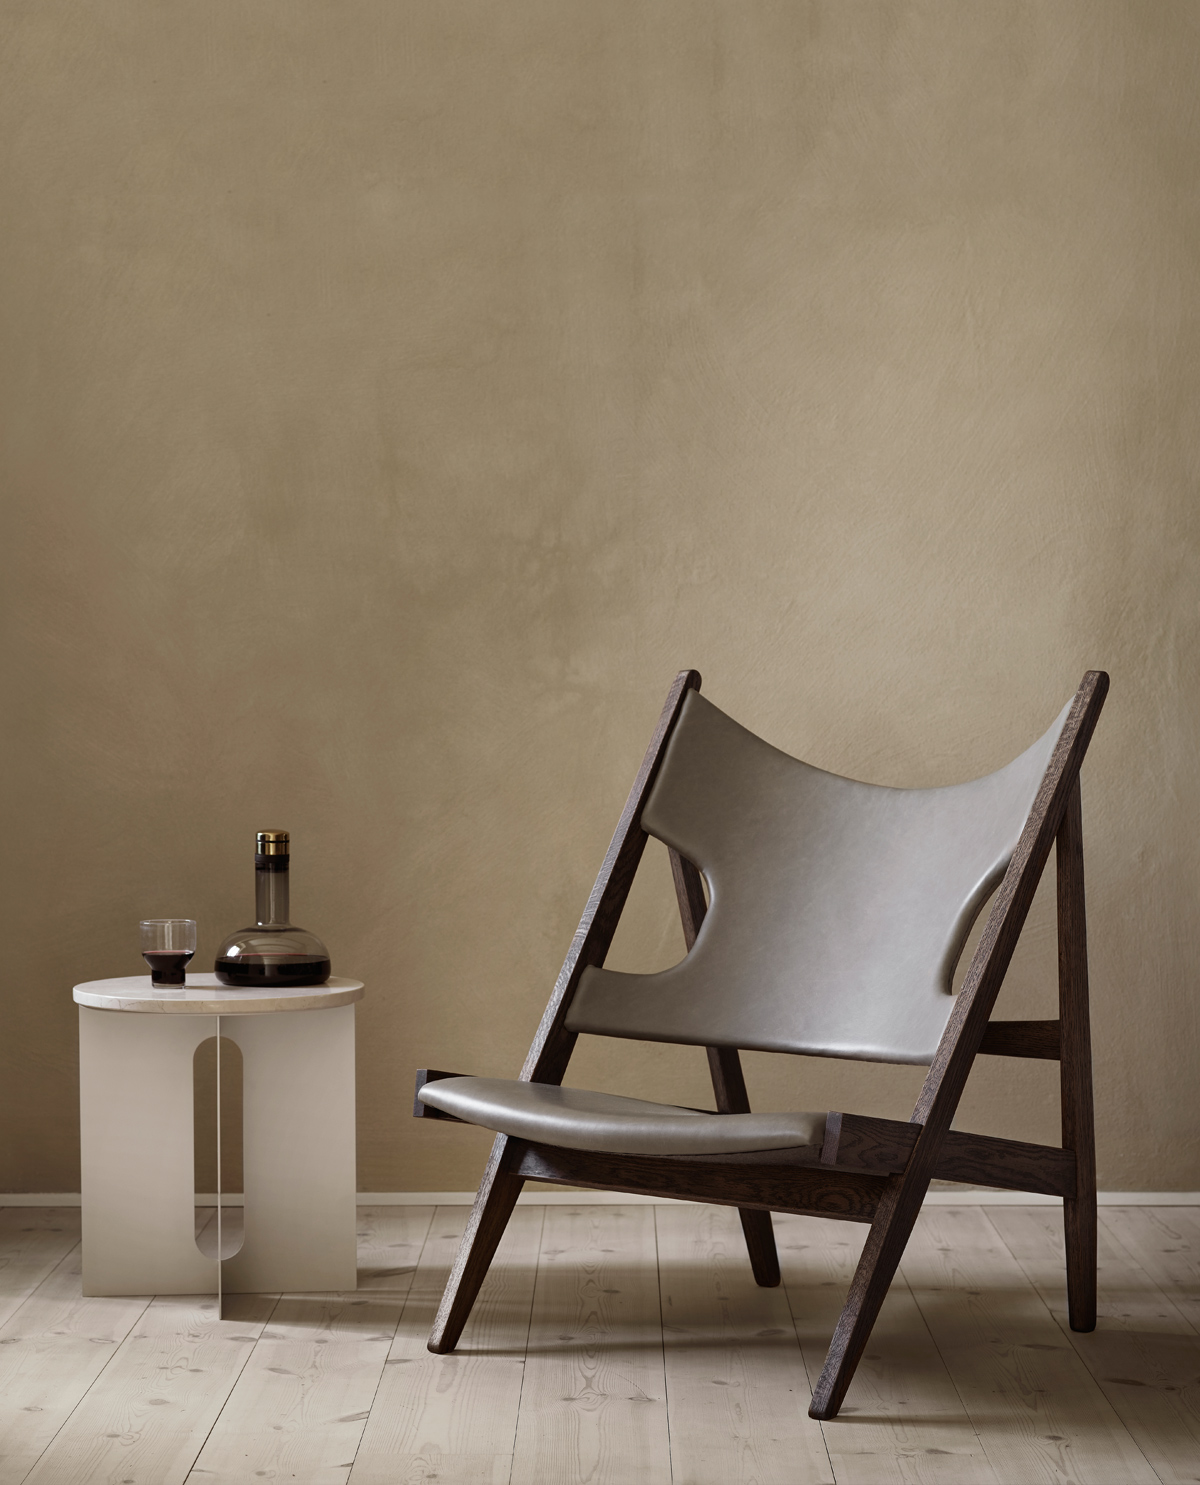 Menu Knitting Chair - Exclusive to Nest.co.uk